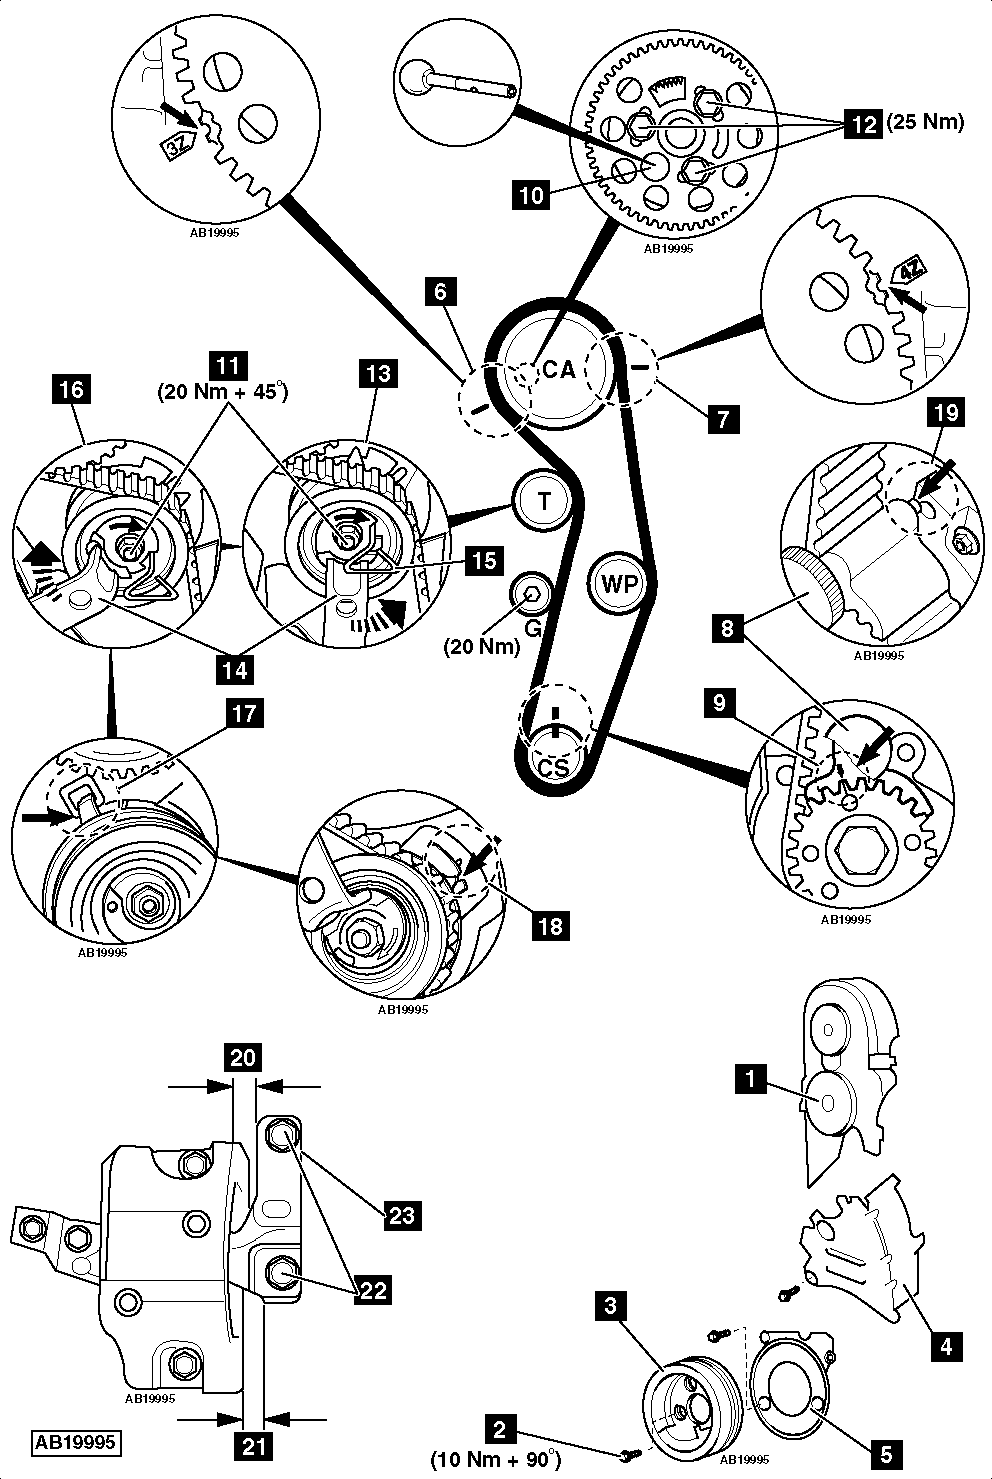 03 vw tdi engine belt diagram wiring library Nissan 240SX how to replace timing belt on vw golf 4 1 9 tdi and 4motion